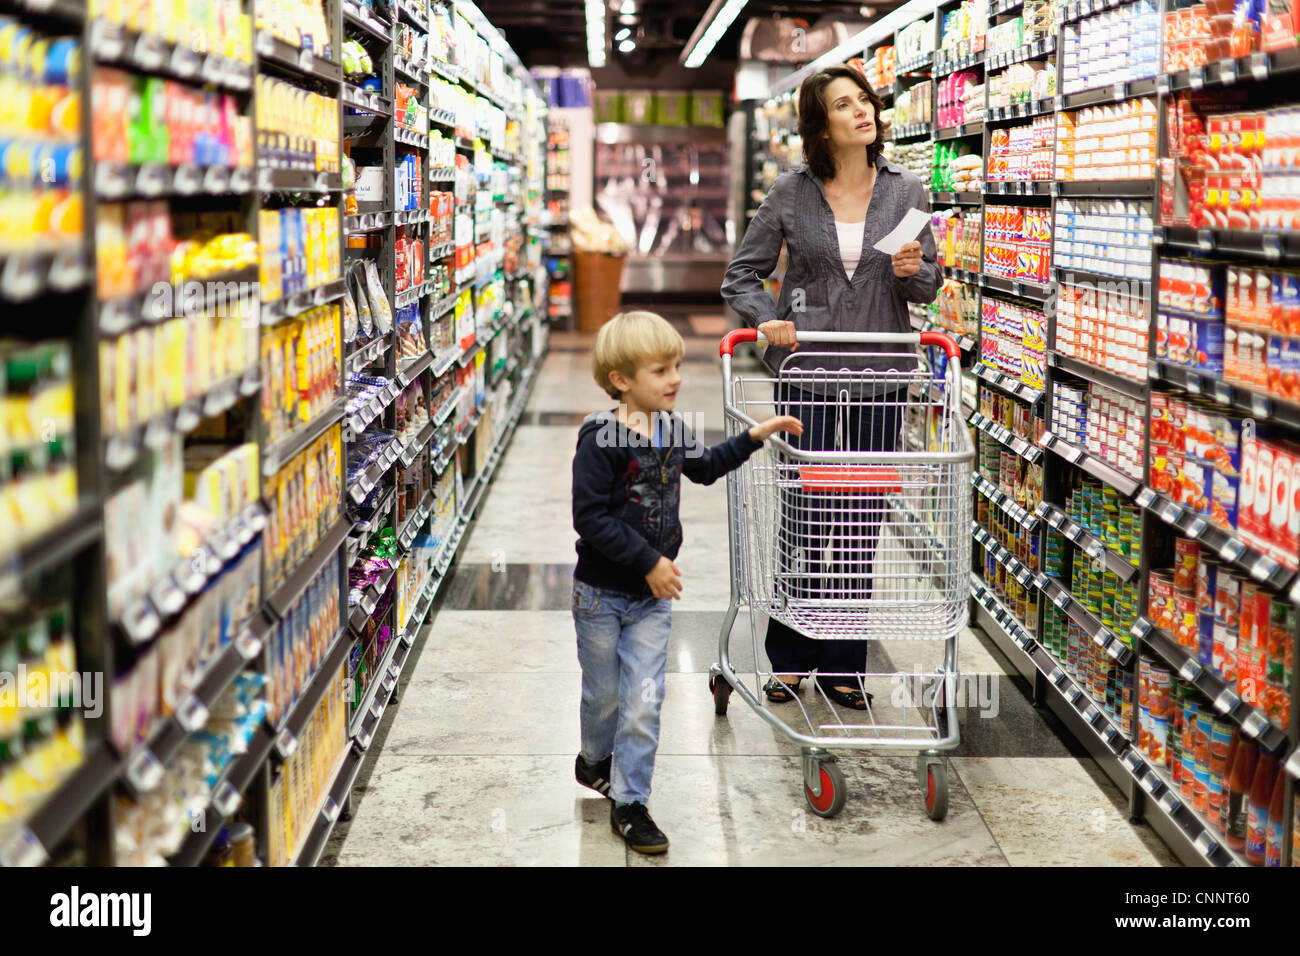 Woman grocery shopping with son - Stock Image